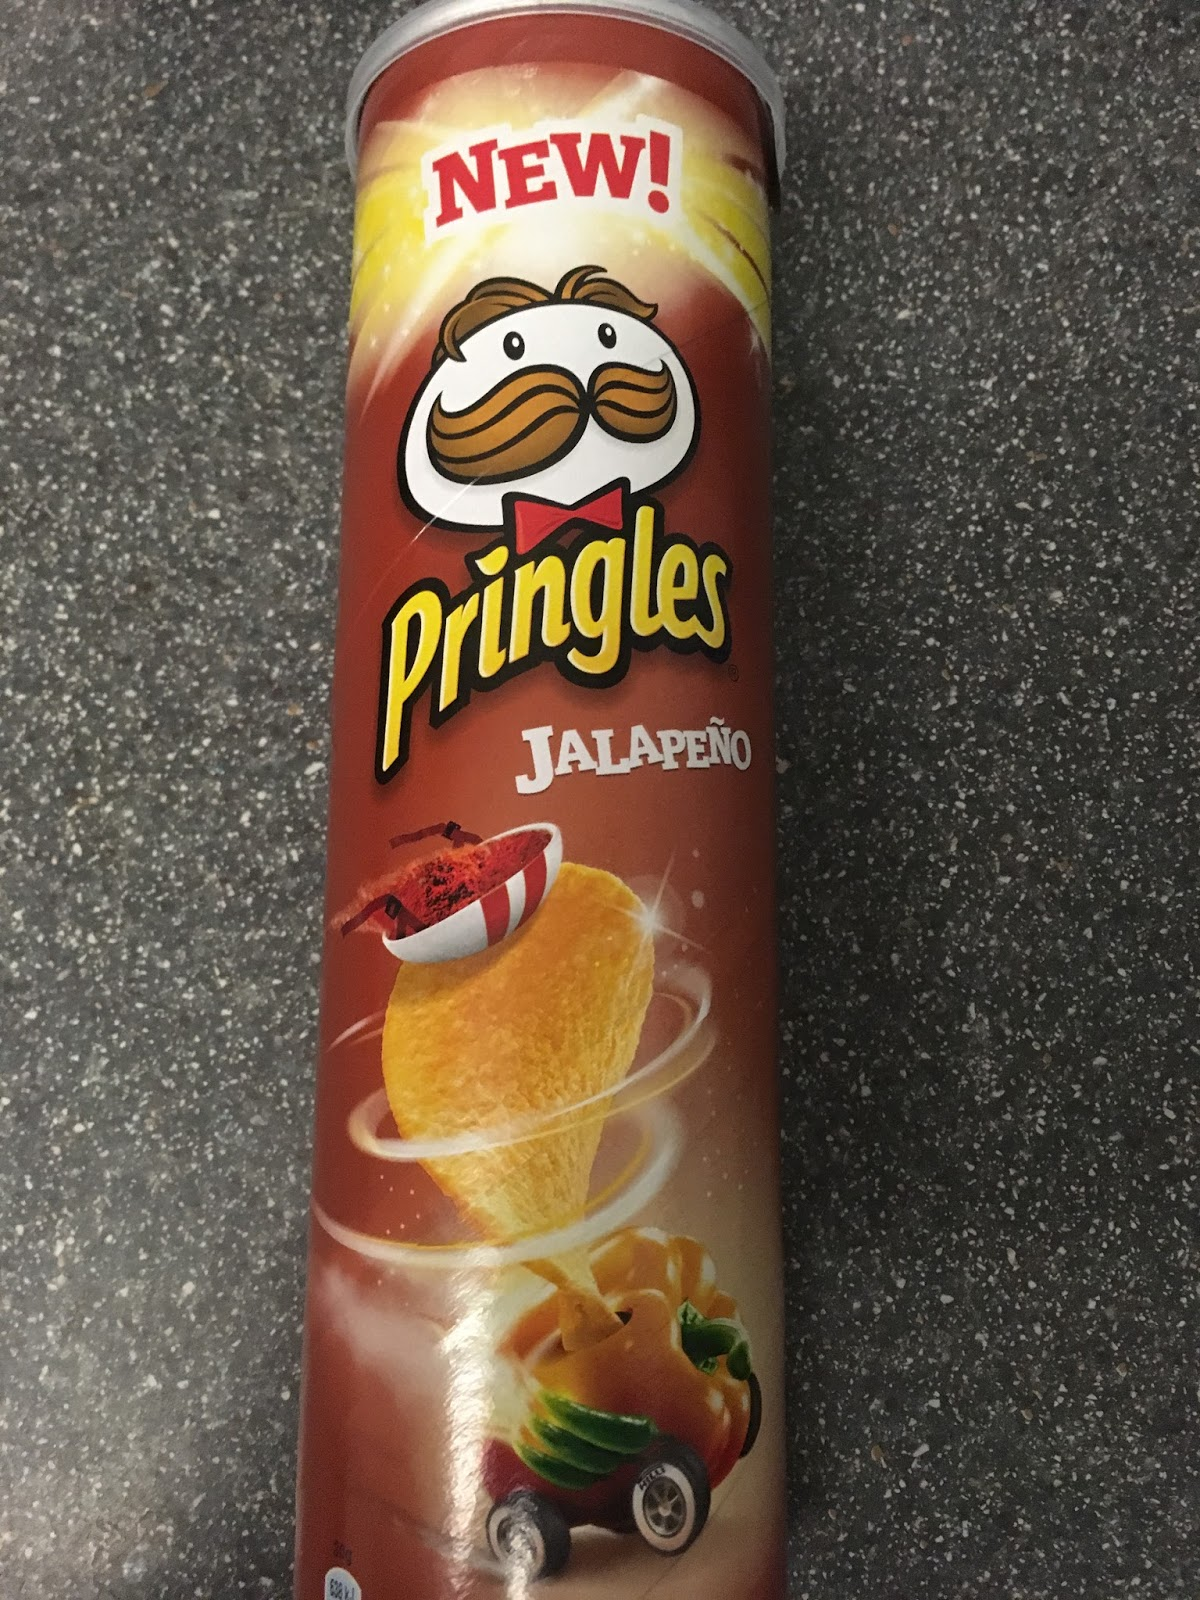 competitive analysis pringles A competitor analysis is a person hired to figure out what the competitors are doing and how the company they work for will counter that competition essentially they investig ate and suggest.